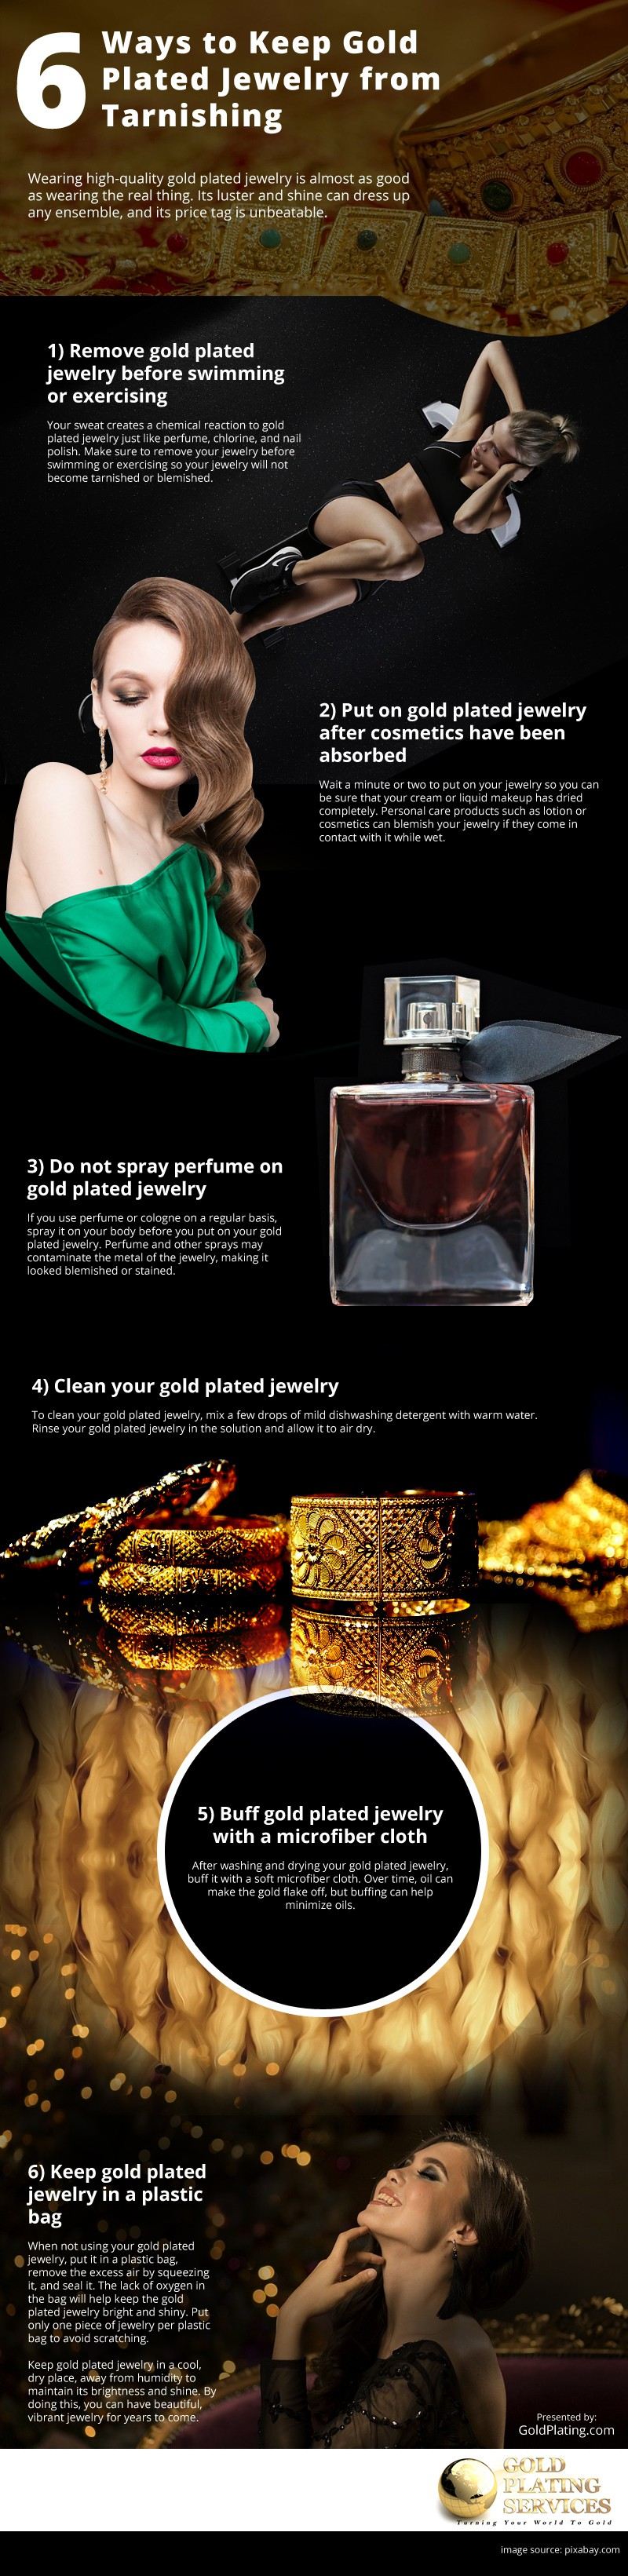 6 Ways to Keep Gold Plated Jewelry from Tarnishing Infographic